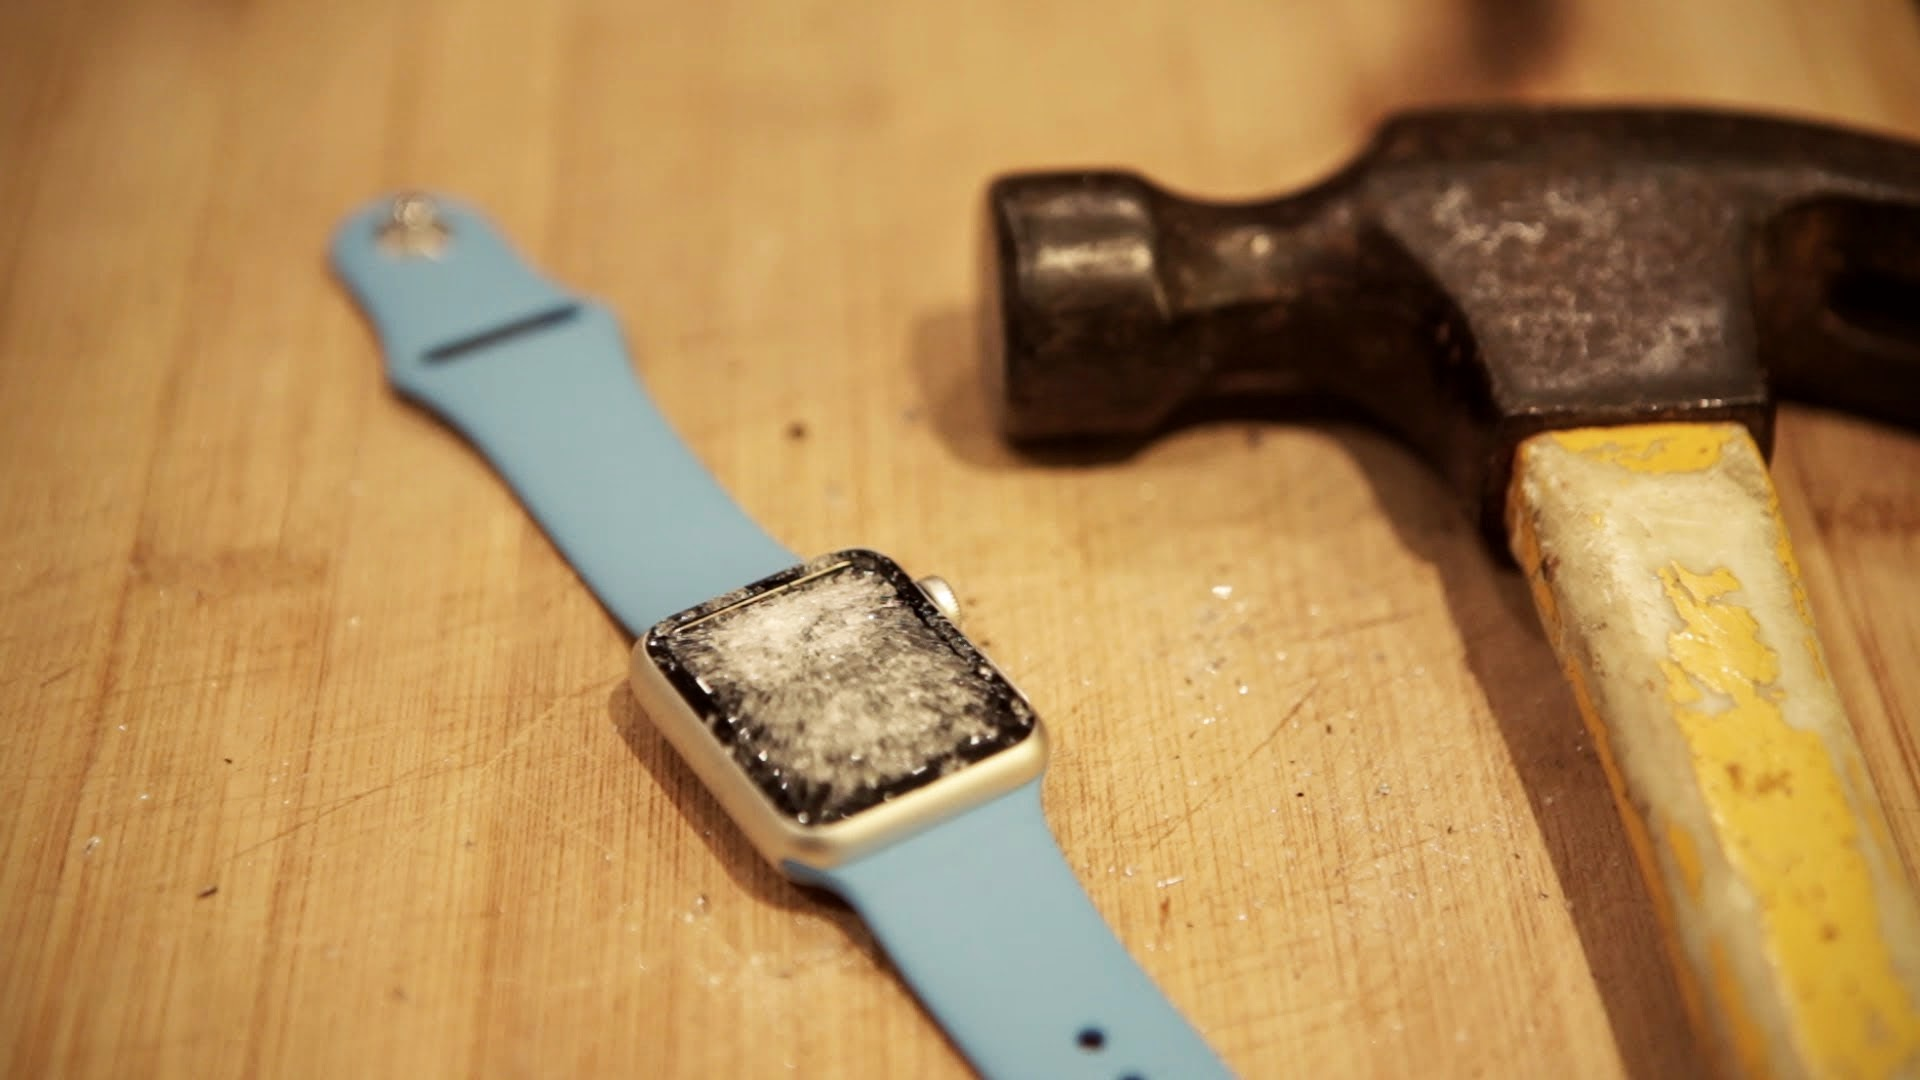 Apple Watch owners: look away now. Your shiny £600 watch is a danger to us all